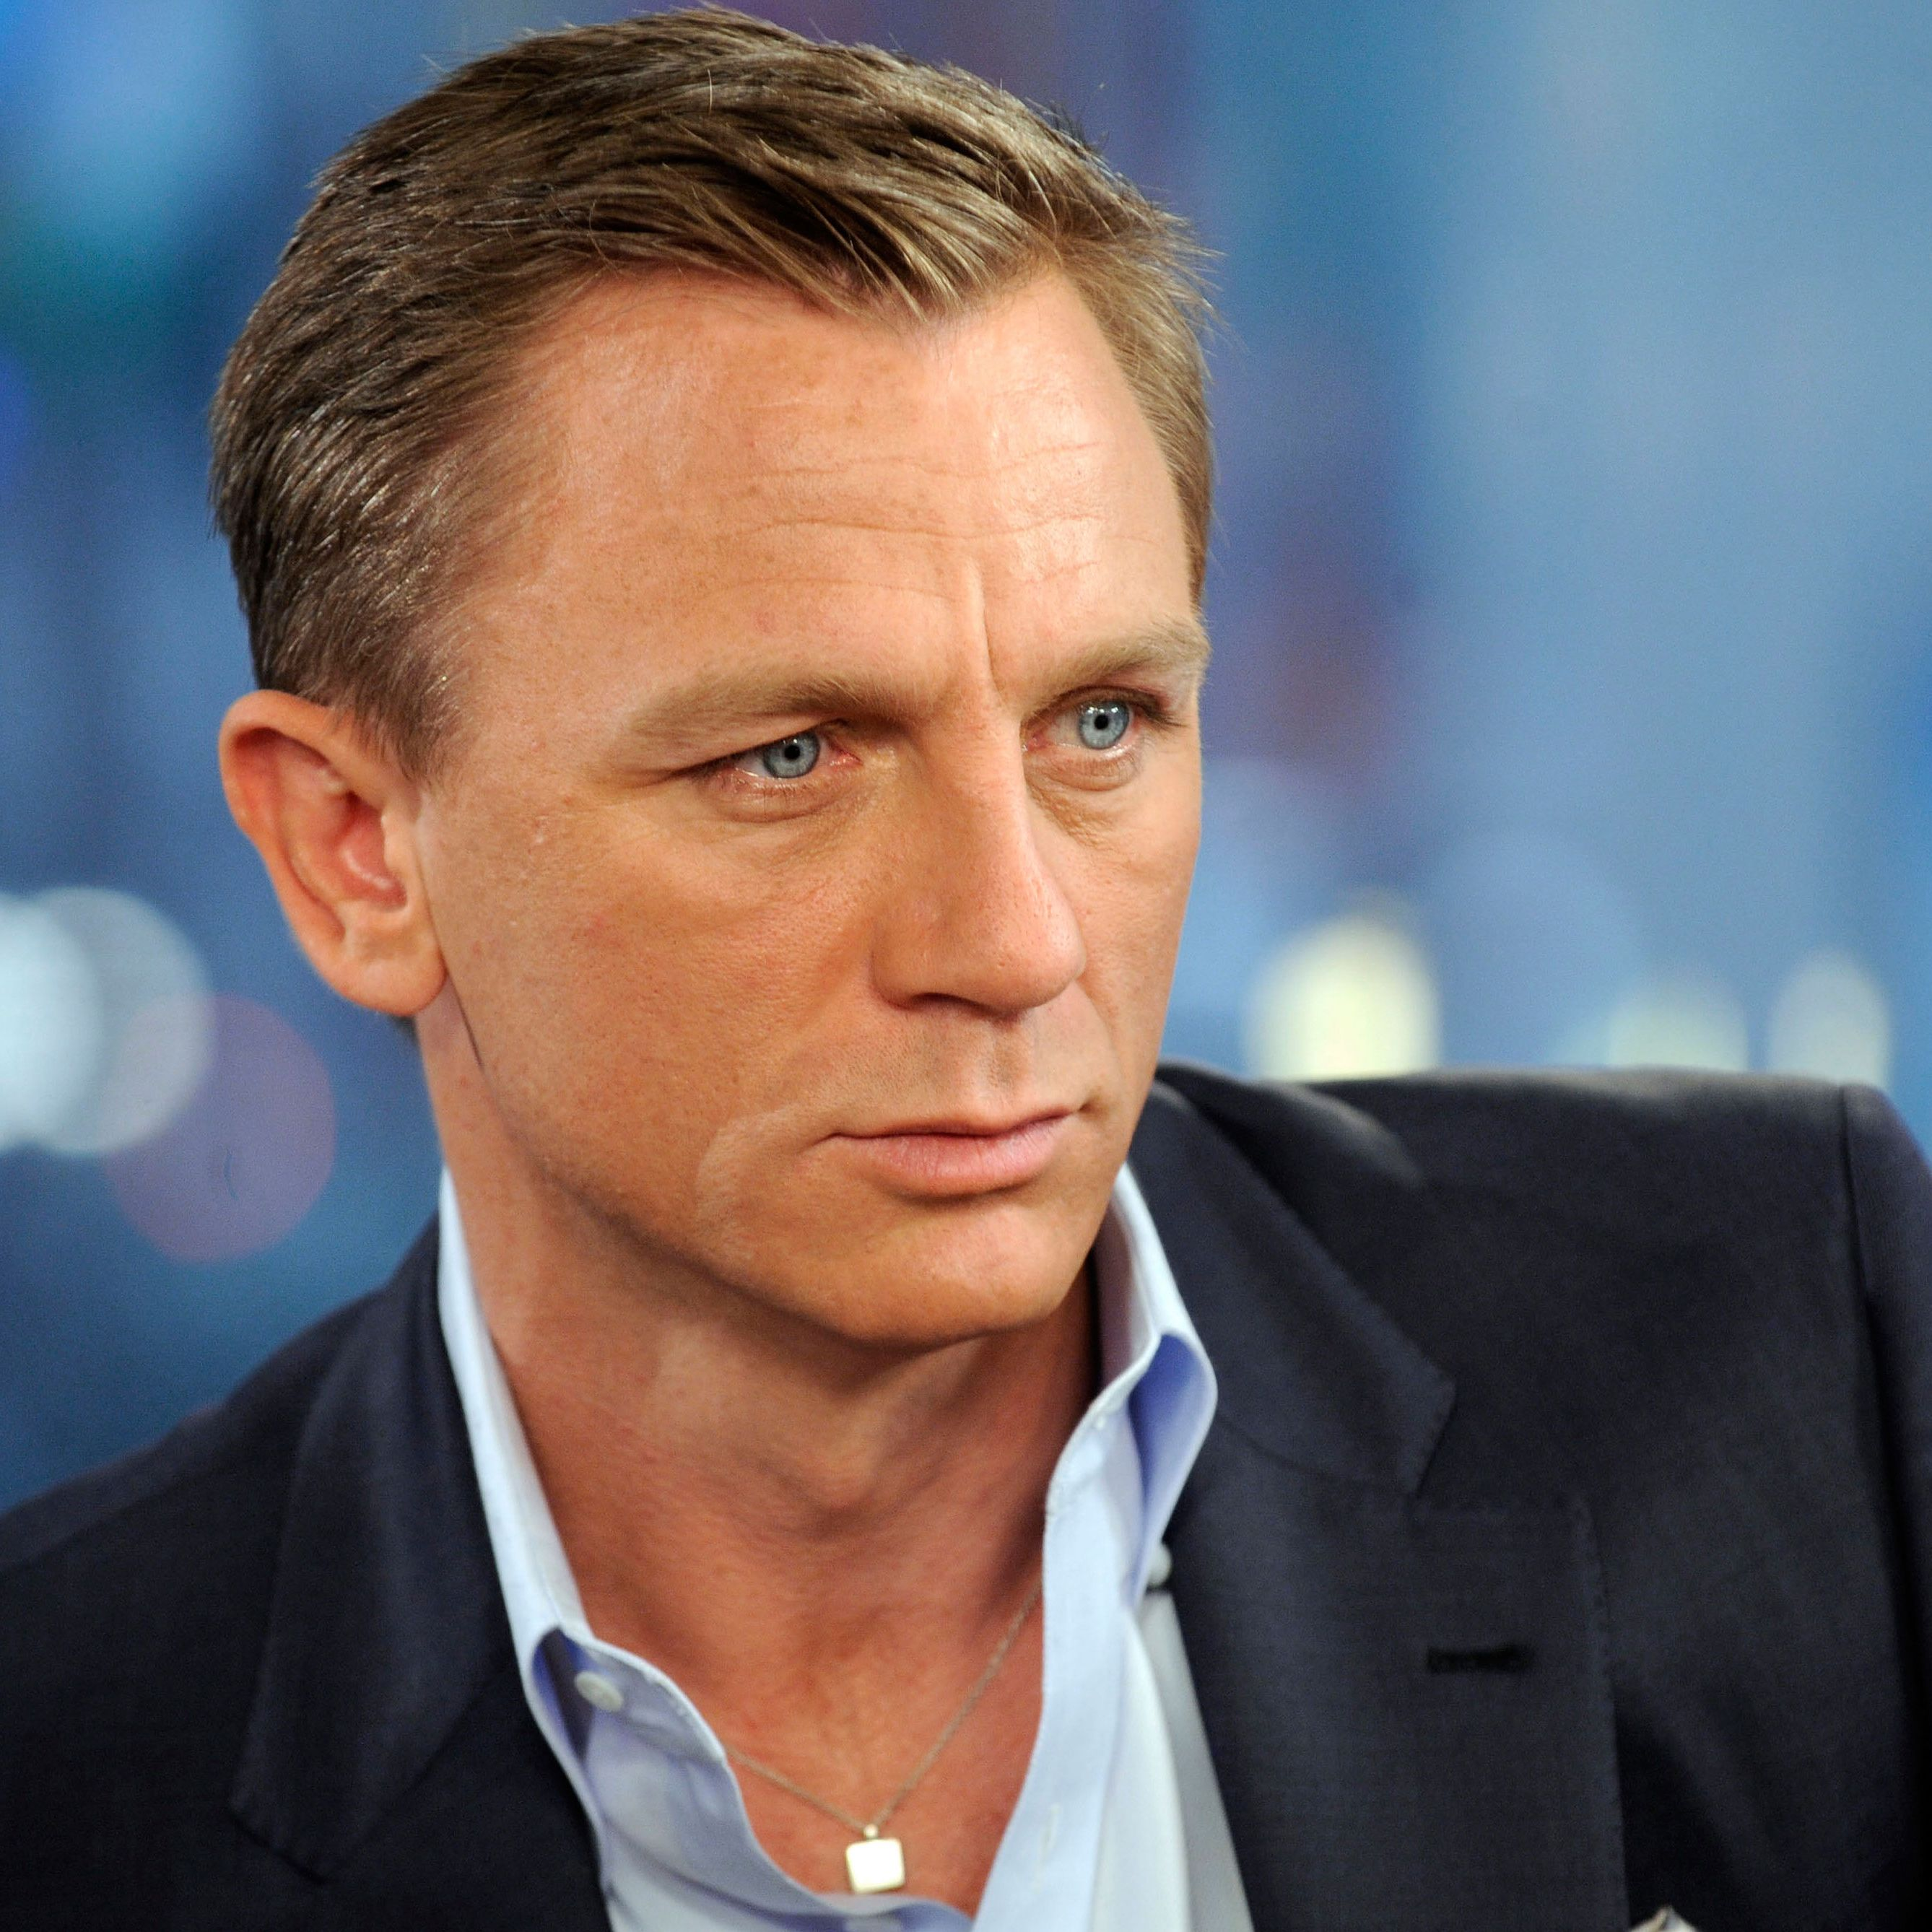 daniel craig how tall